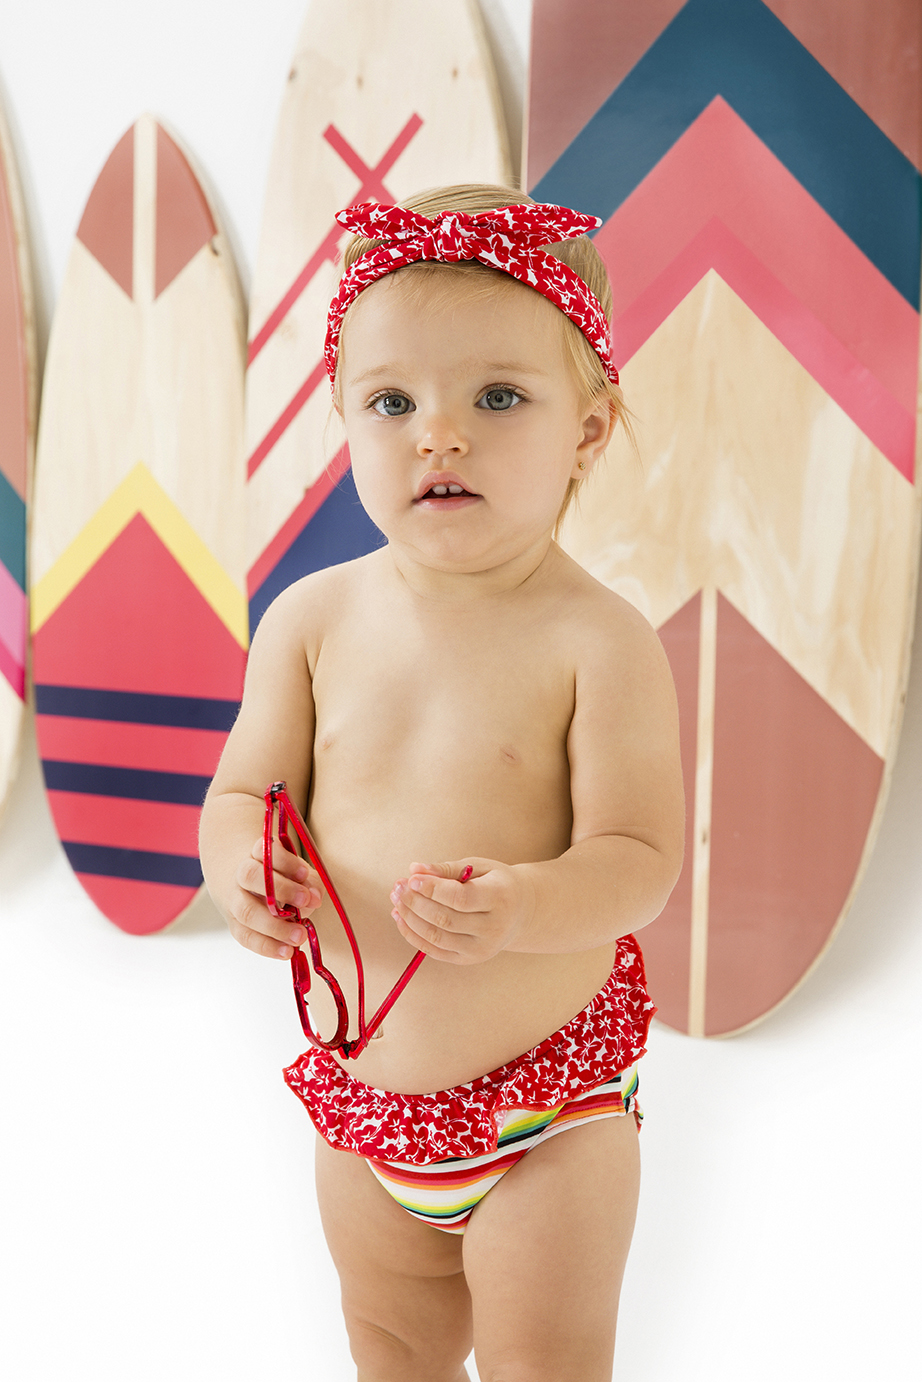 fa85bdbf9 Baby Girl s Swimsuit With A Mixture Of Prints - Baby Babado Holiday ...